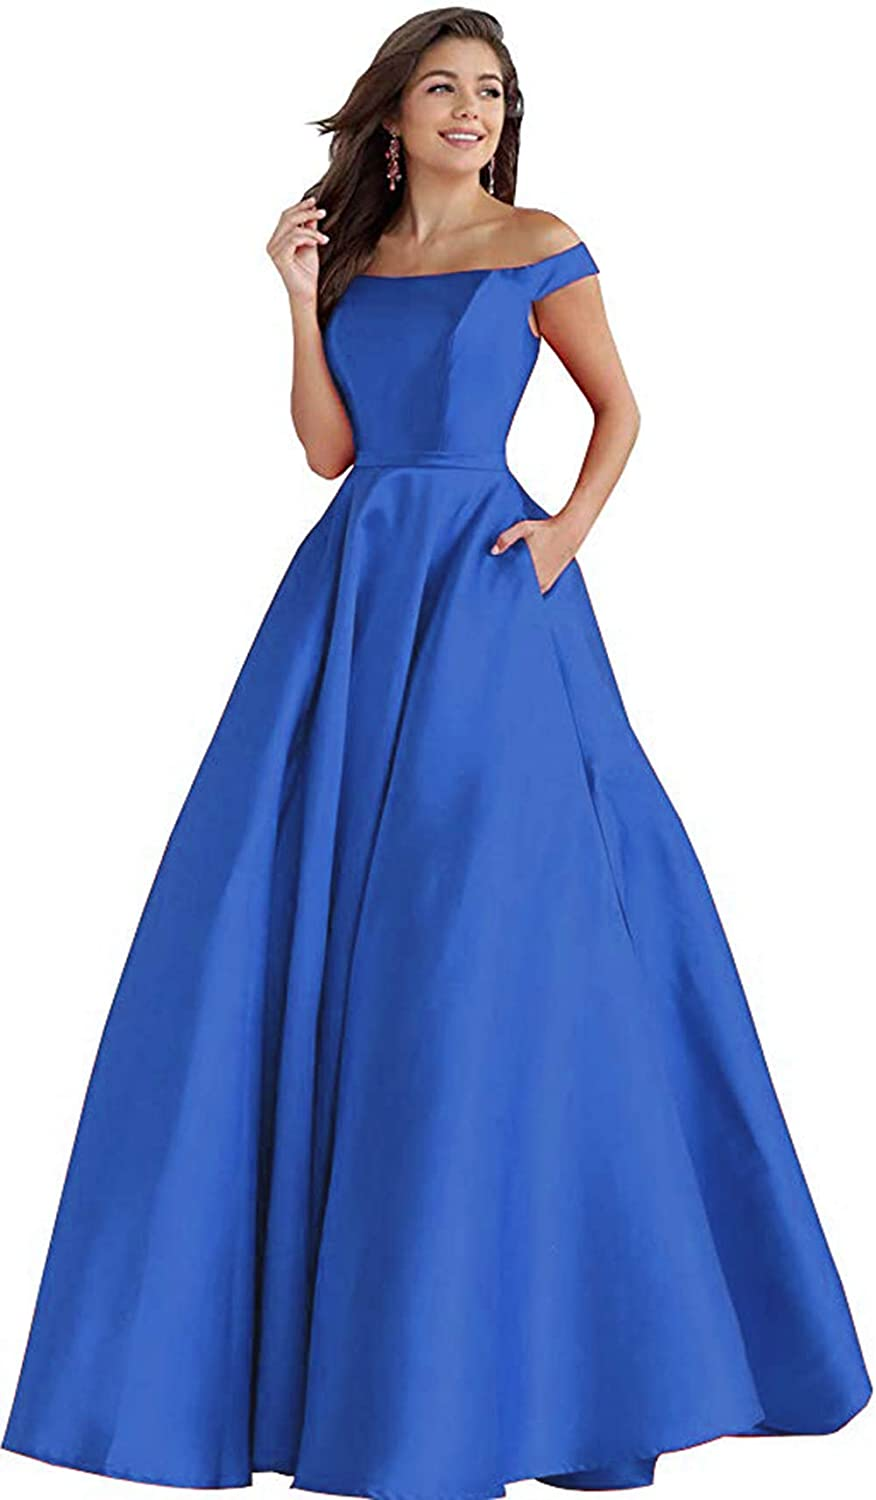 bluee Rmaytiked Womens Off The Shoulder Long Prom Dresses Satin A Line Formal Evening Ball Gowns with Pockets 2019 New